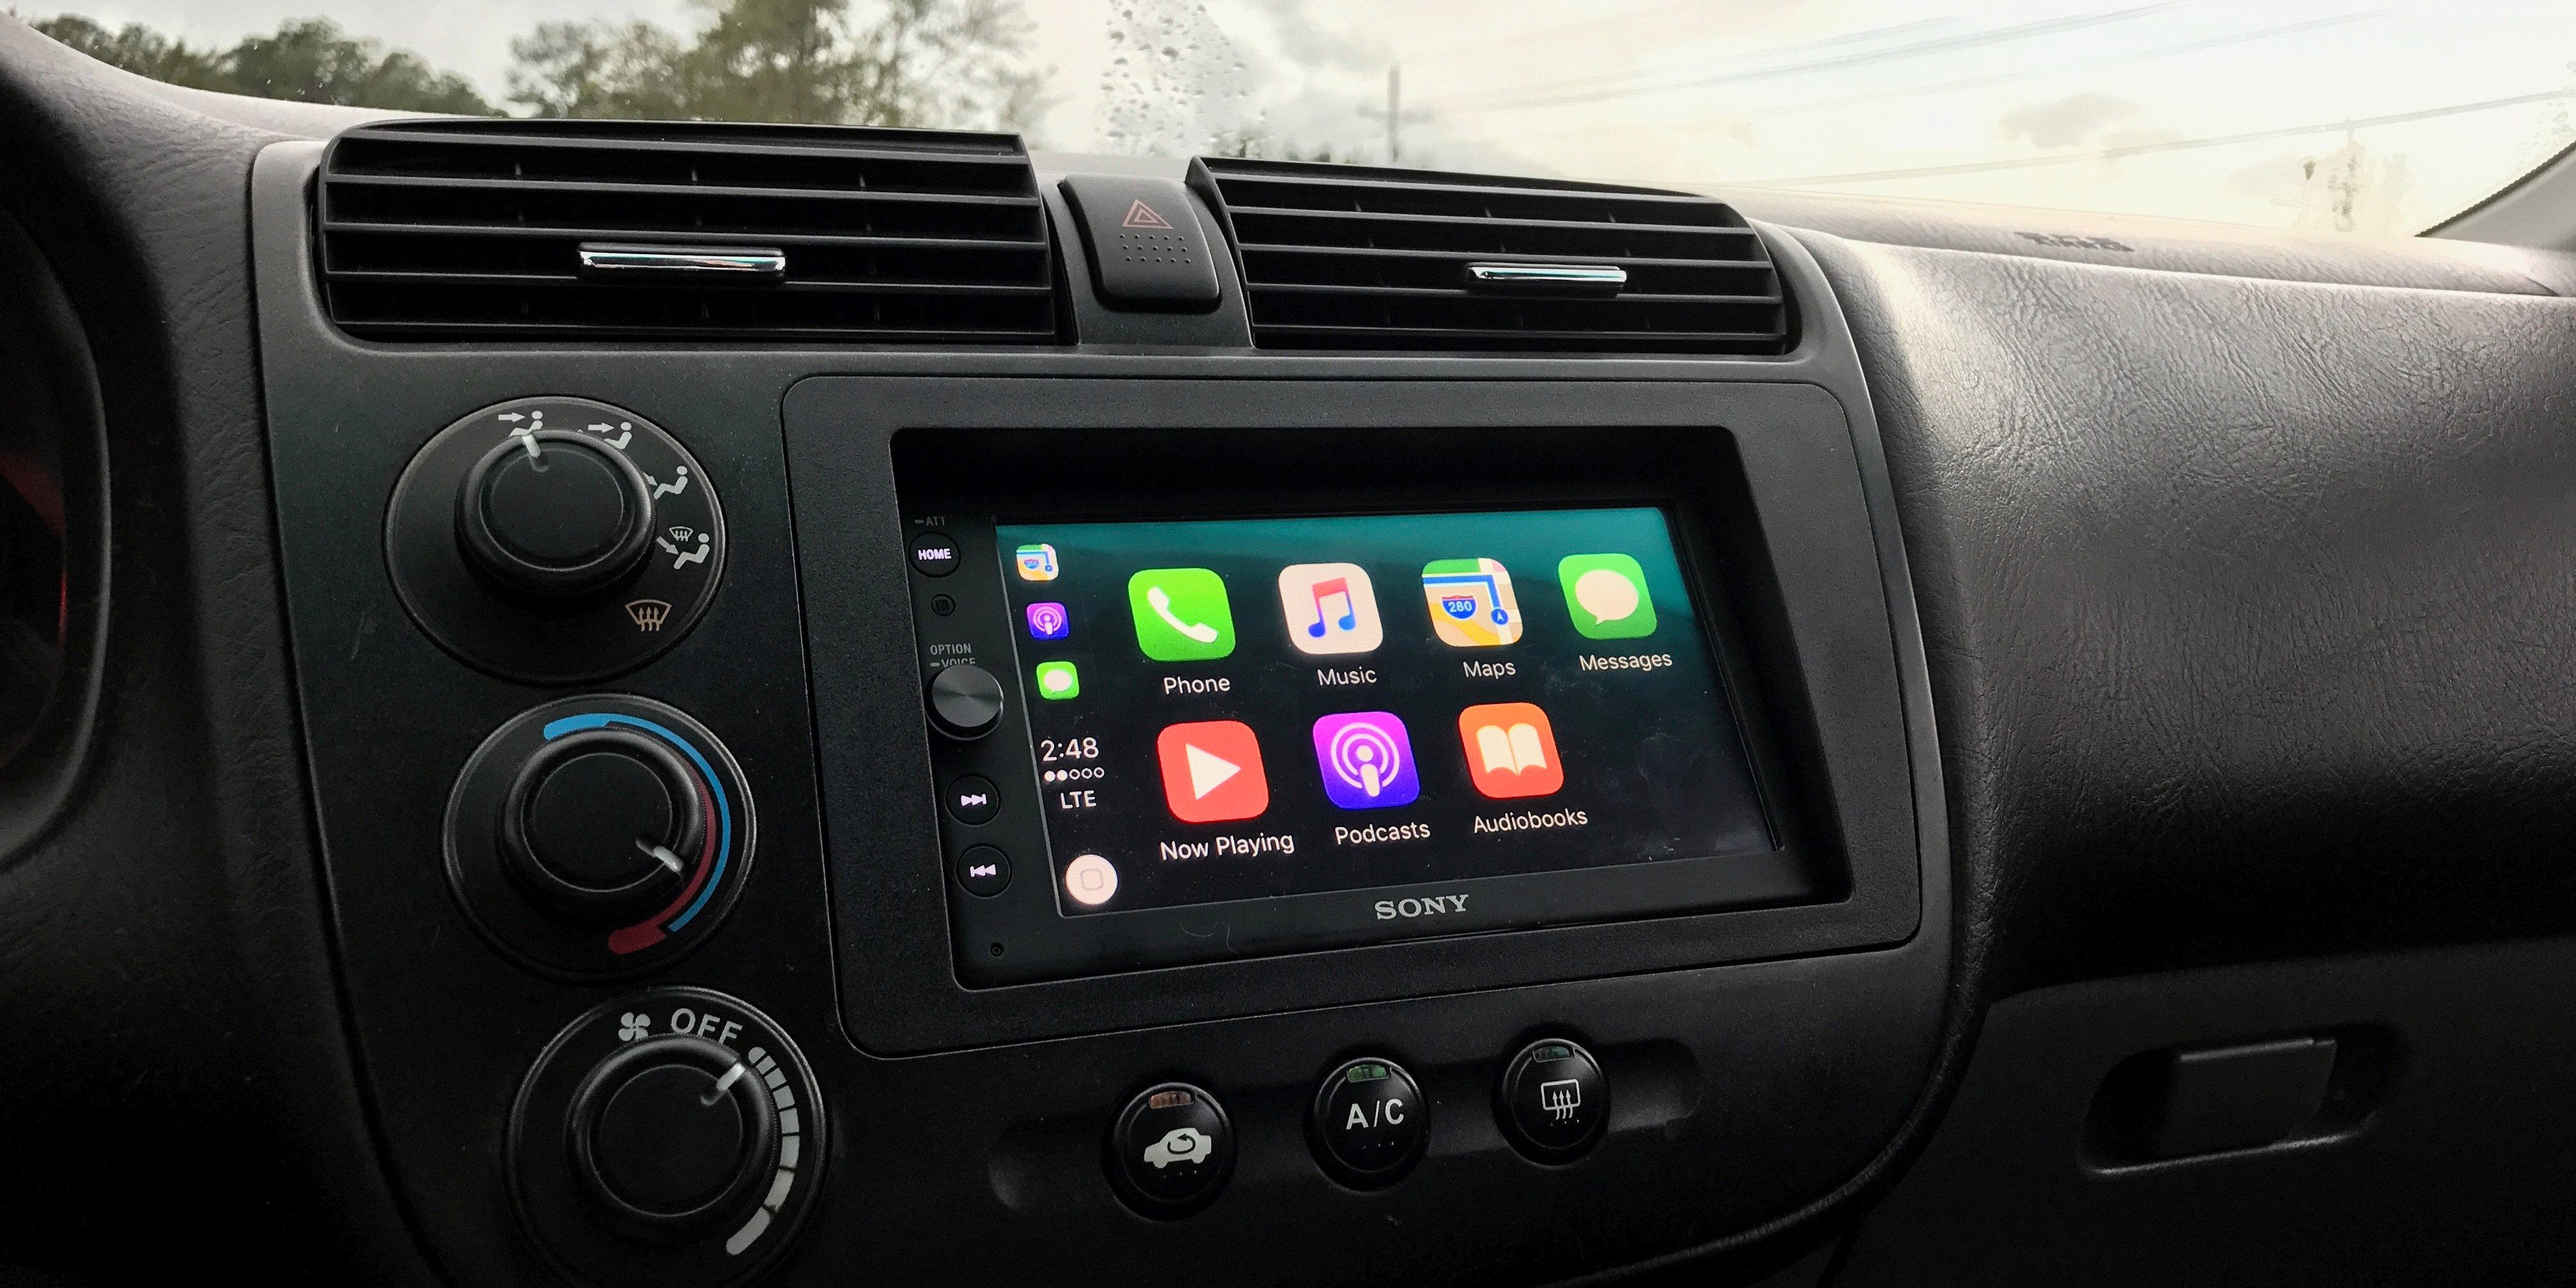 apple carplay z ios 10 3 beta zmiany zaprezentowane na filmie wideo. Black Bedroom Furniture Sets. Home Design Ideas